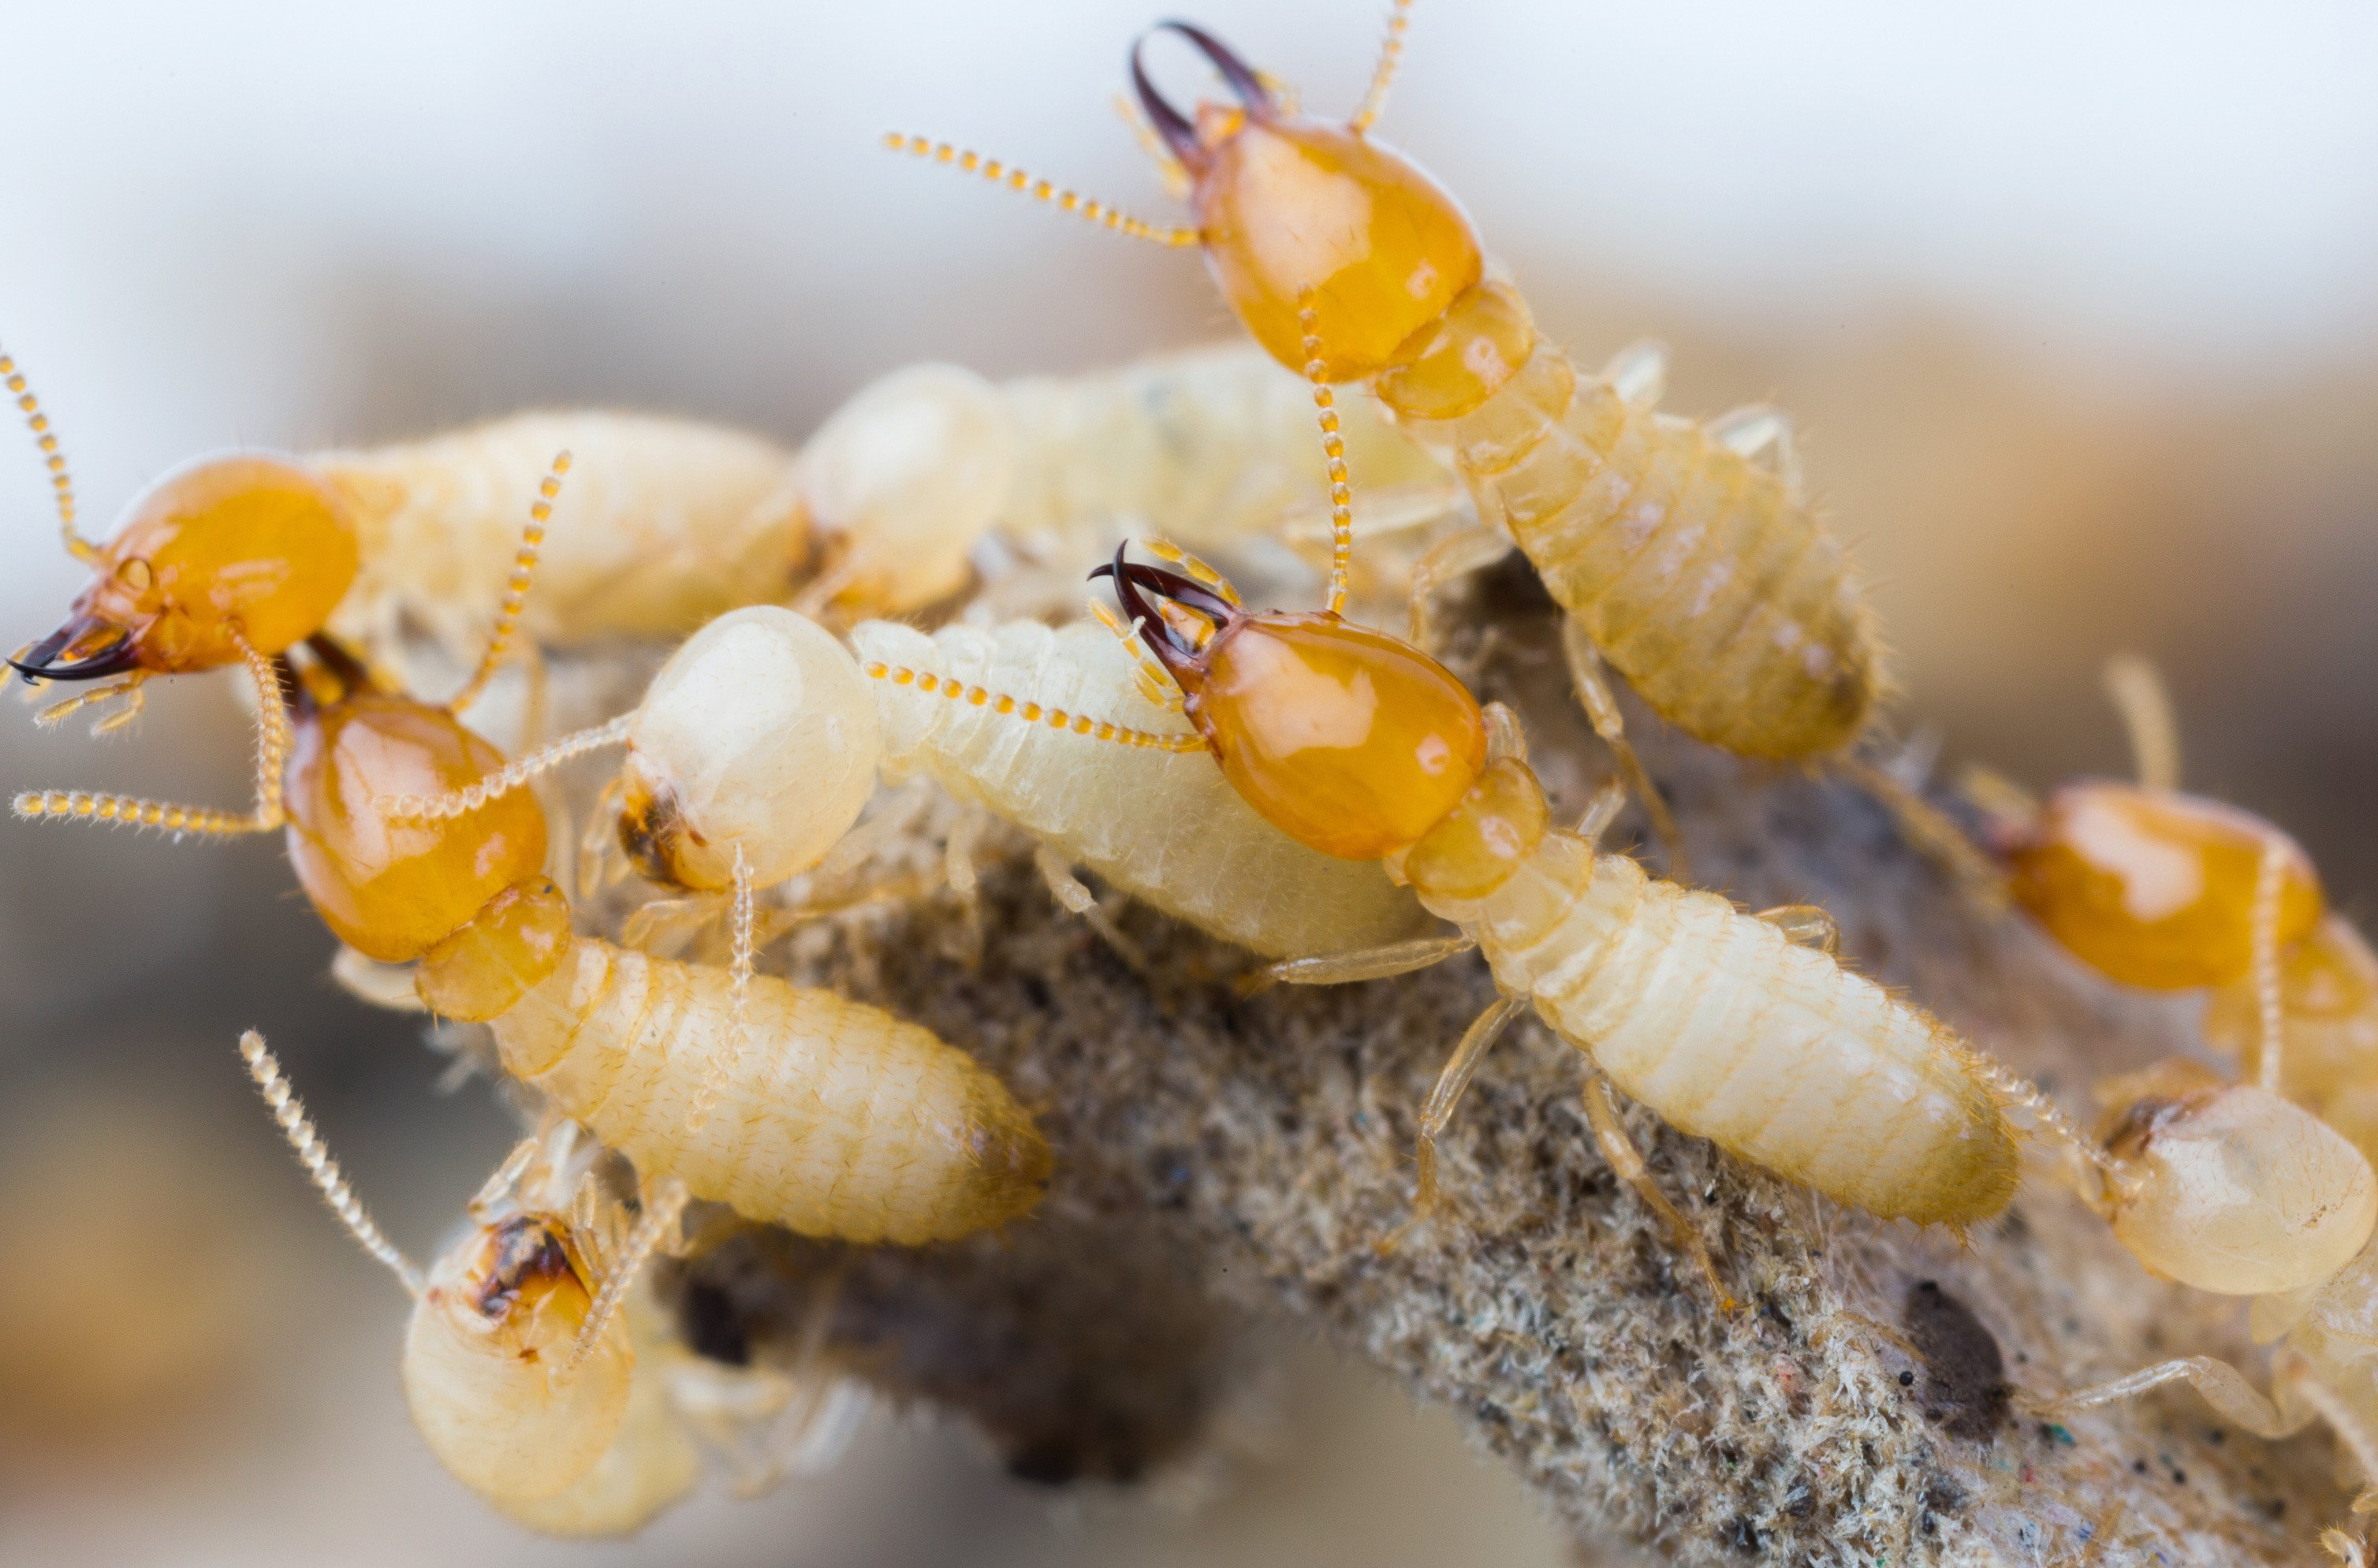 Termites together outside.